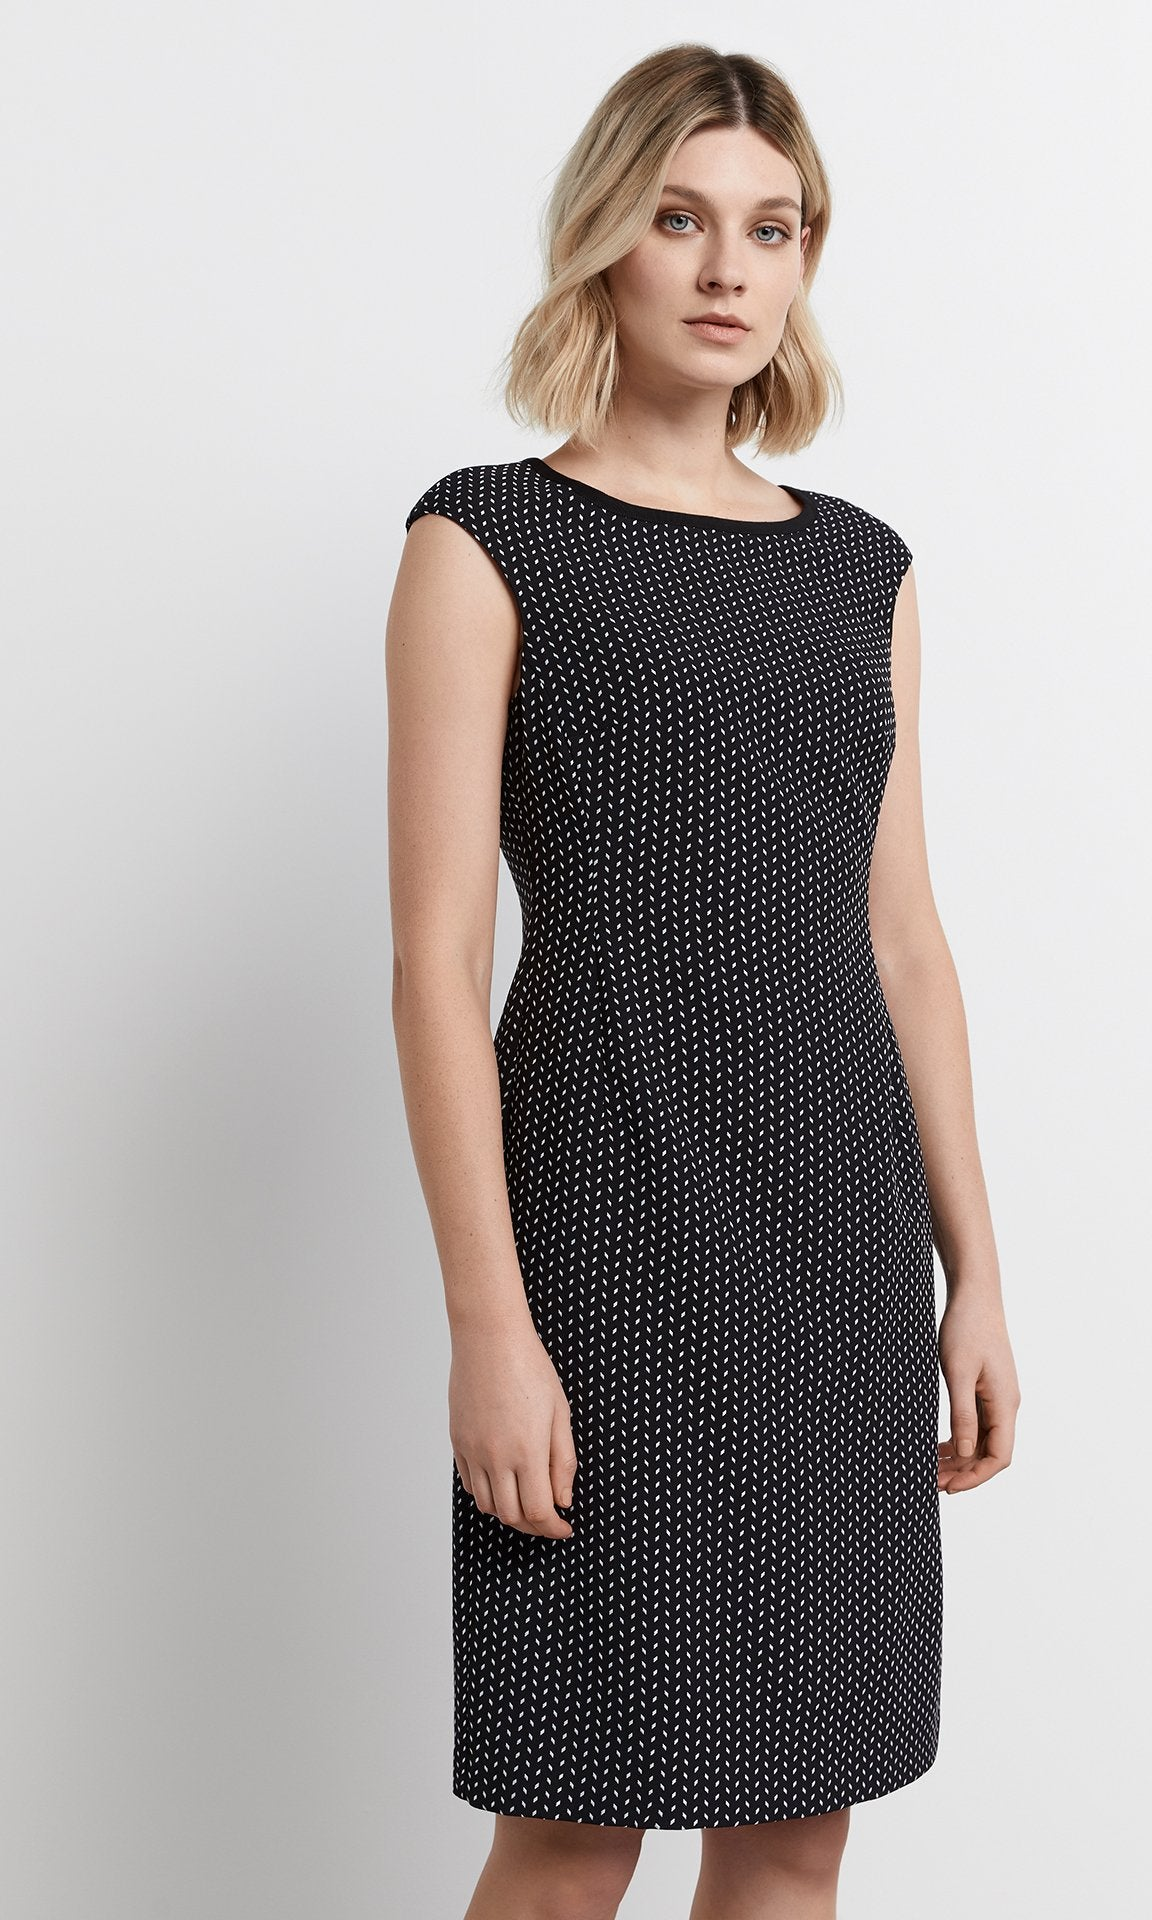 Salina Dress - Blk/White